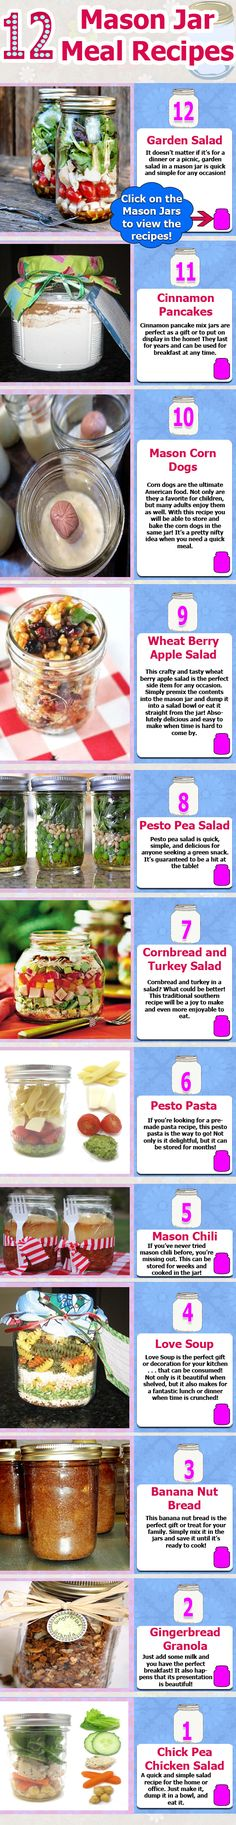 I could do this for my kid! Mason jar recipes!